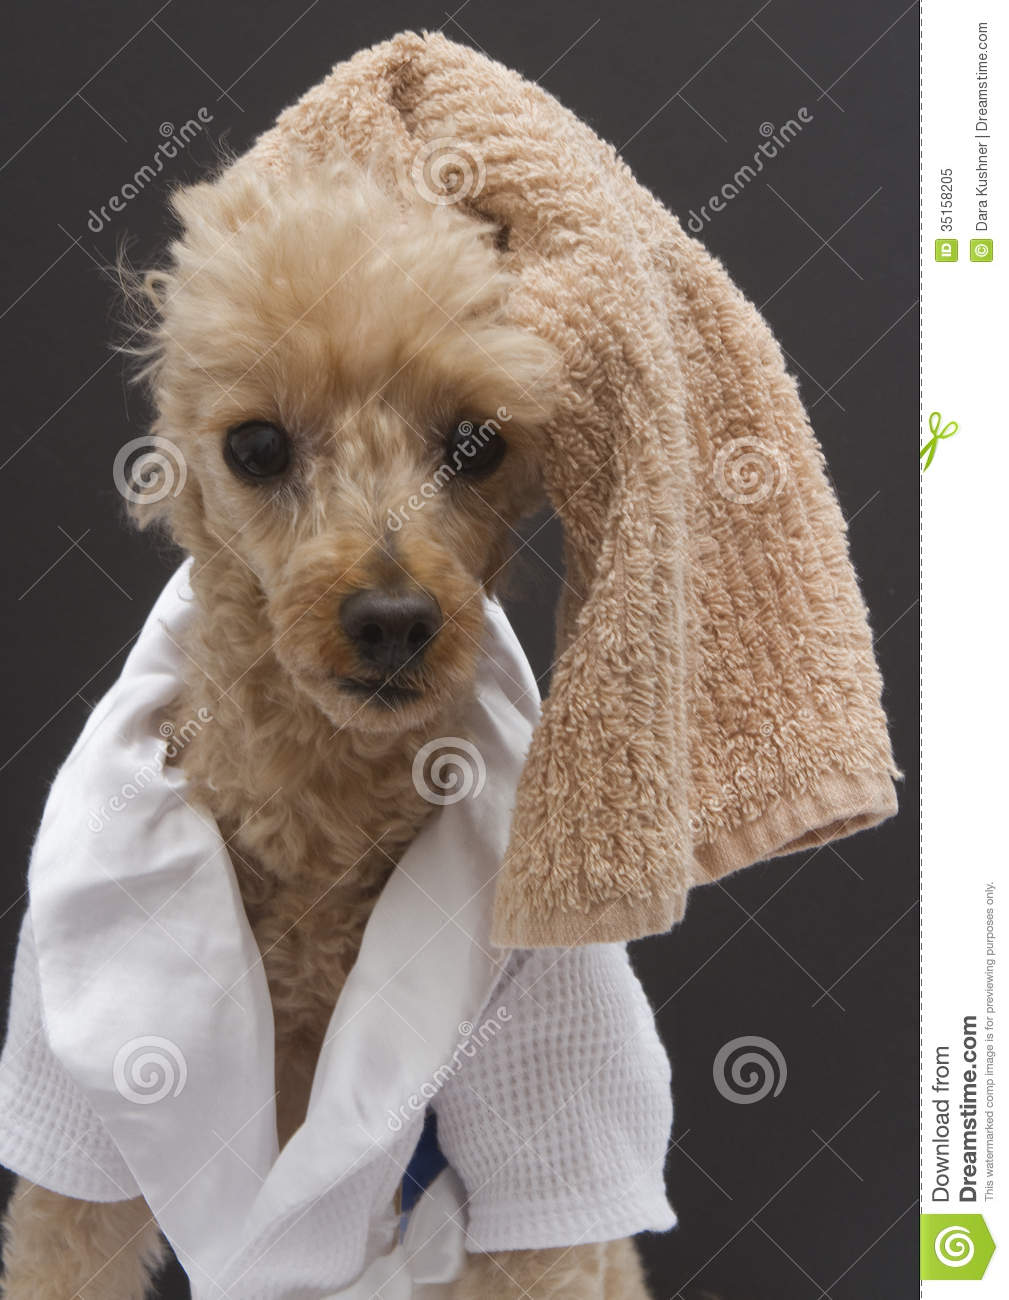 Poodle With Towel On Head Royalty Free Stock Photo Image